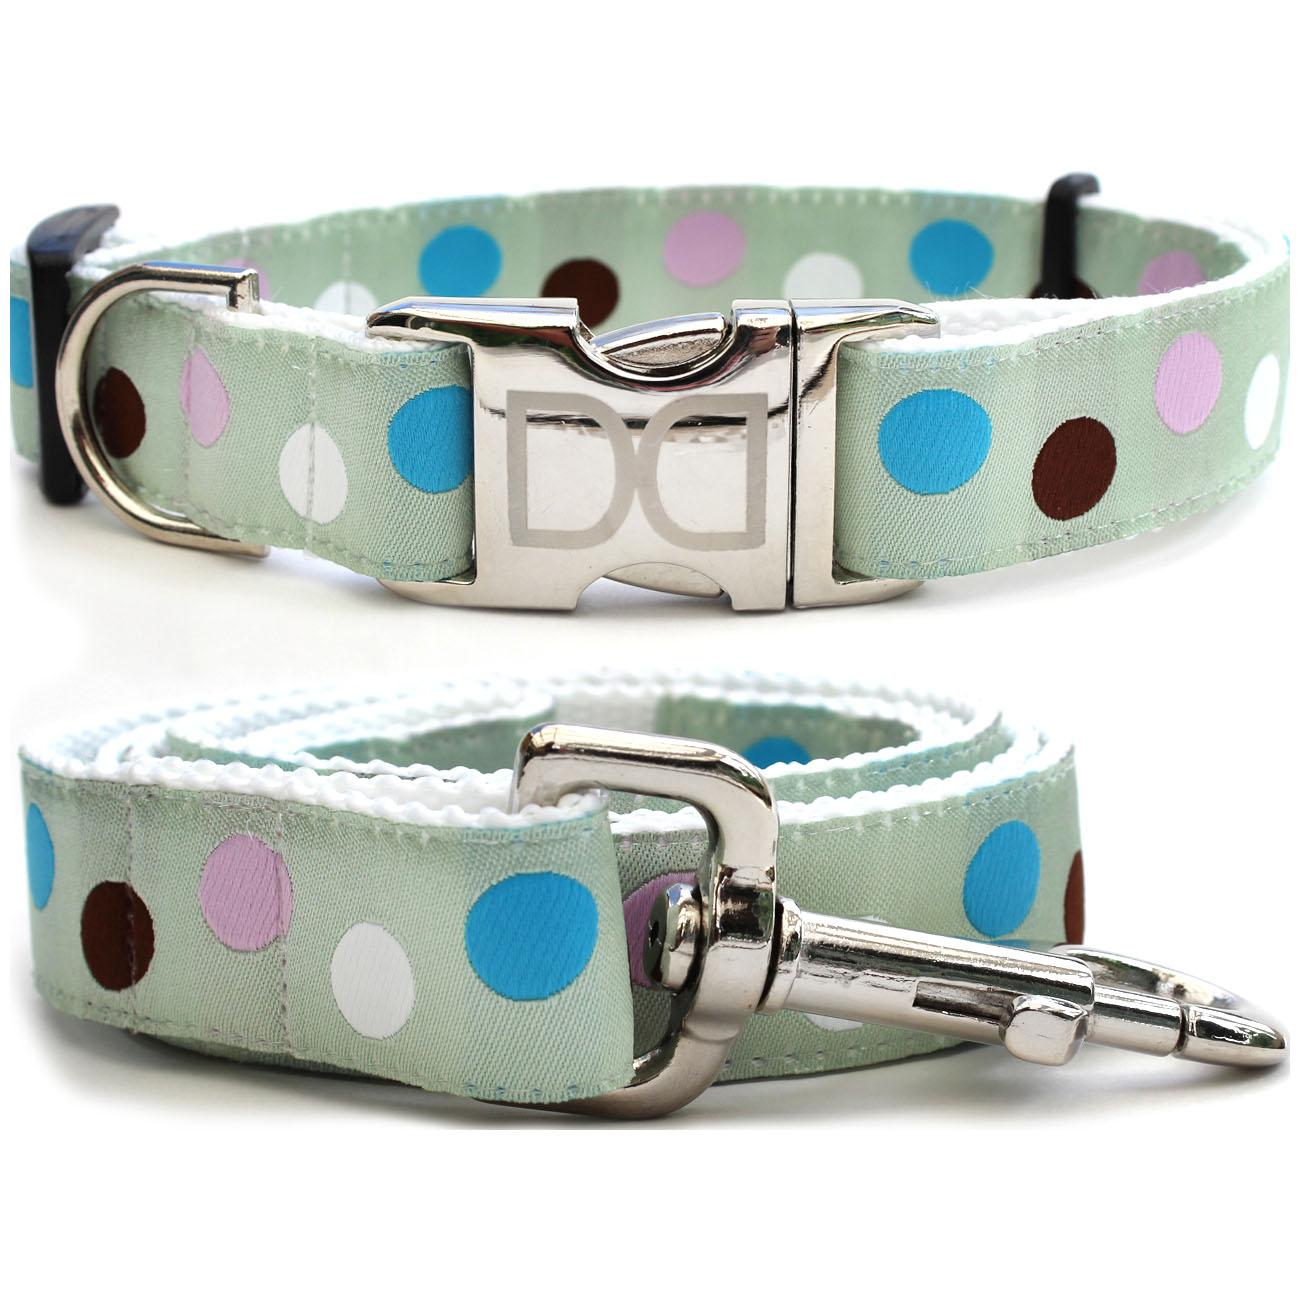 Metro Dog Collar and Leash Set by Diva Dog